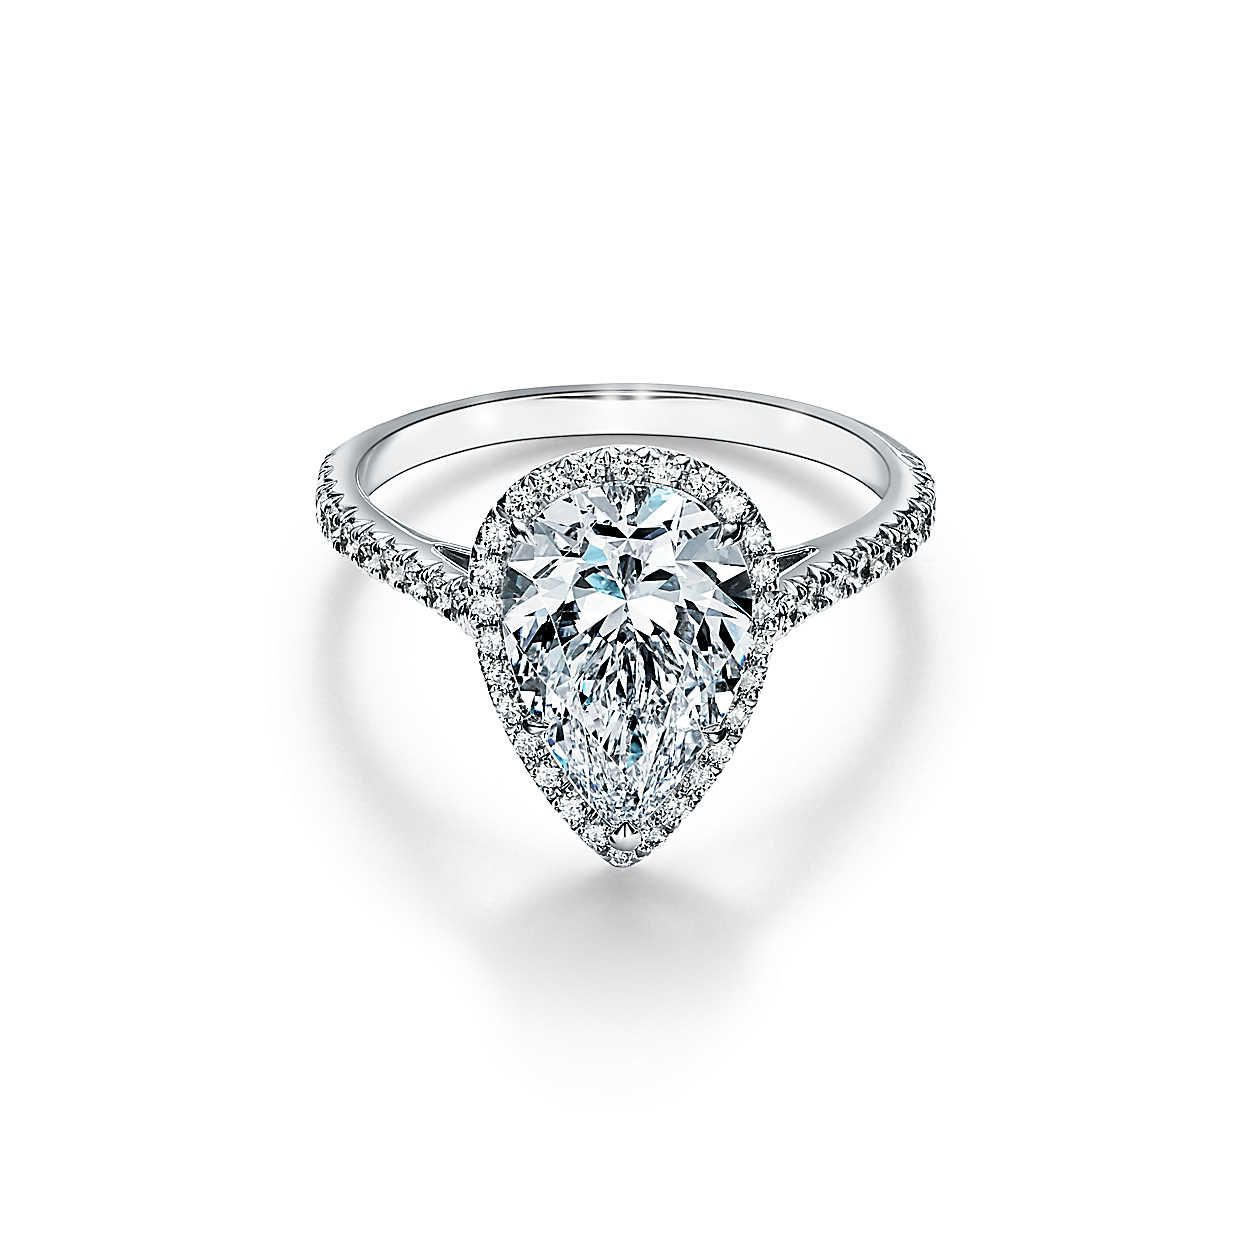 34 Pear Shaped Engagement Rings For Every Bride With Regard To Best And Newest Classic Teardrop Halo Rings (View 15 of 25)